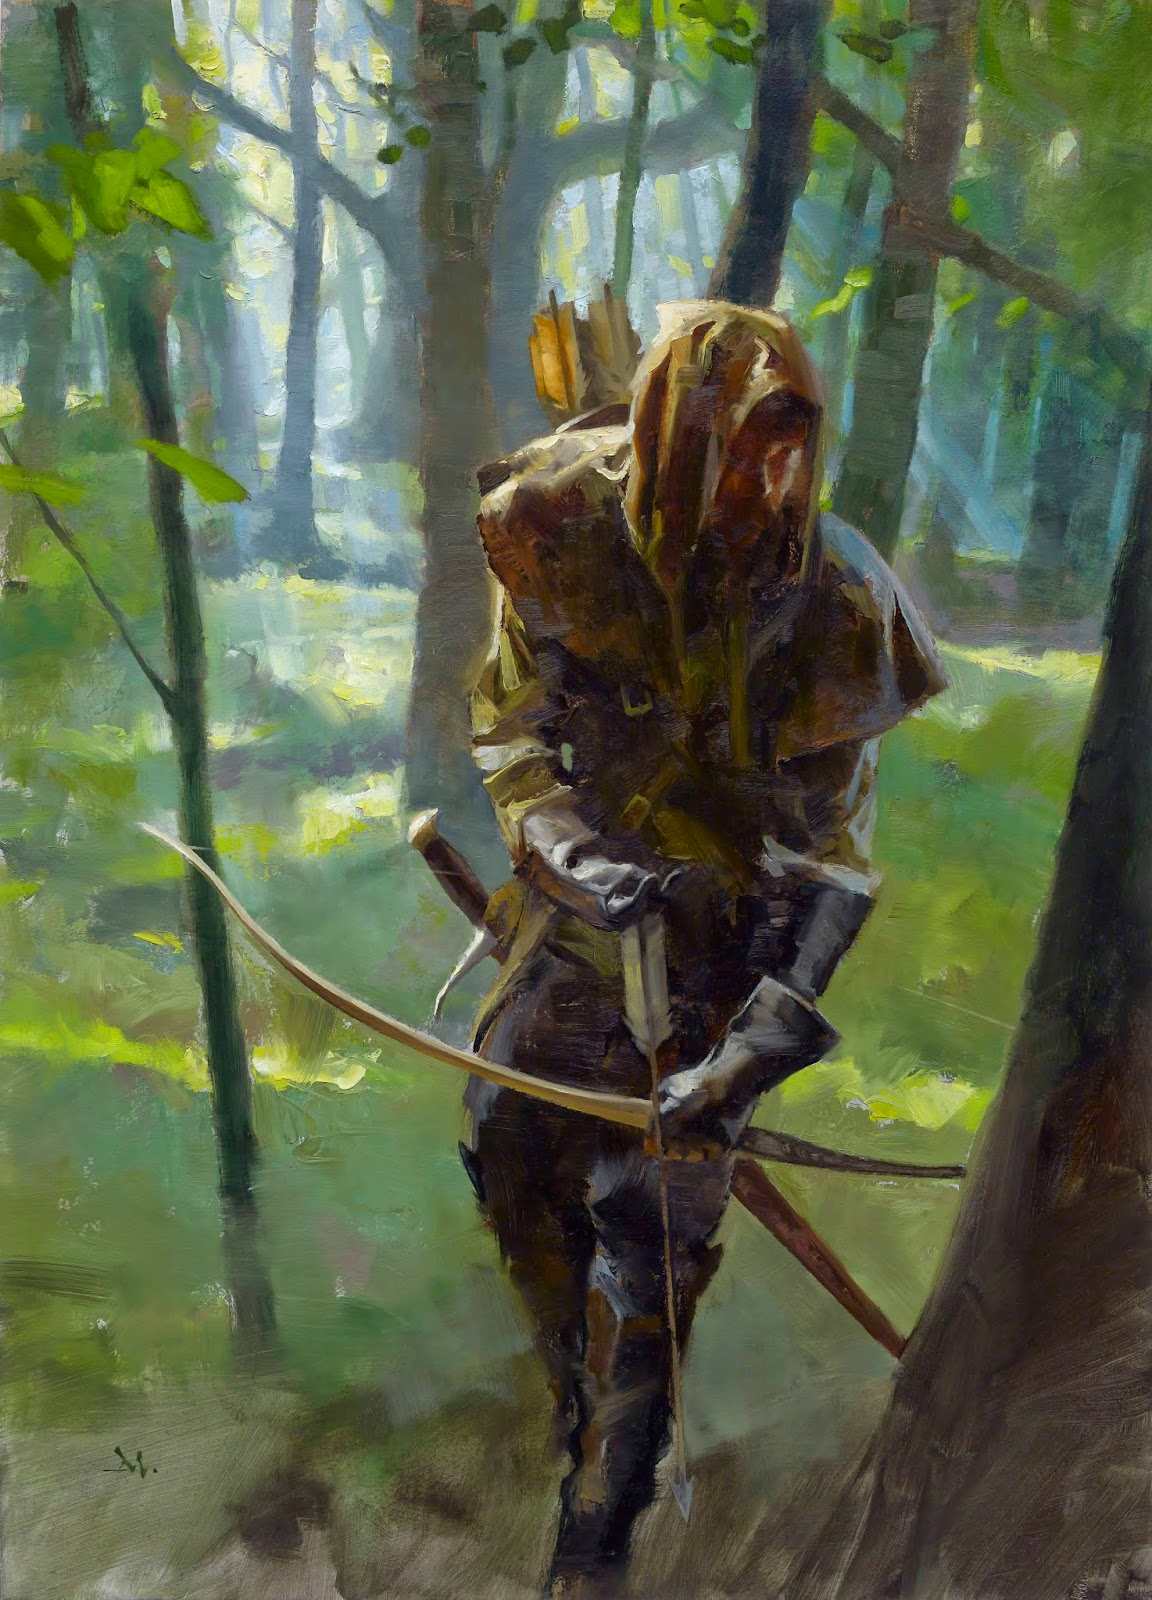 Robin Hood by Gregory Manchess : ImaginaryCharacters